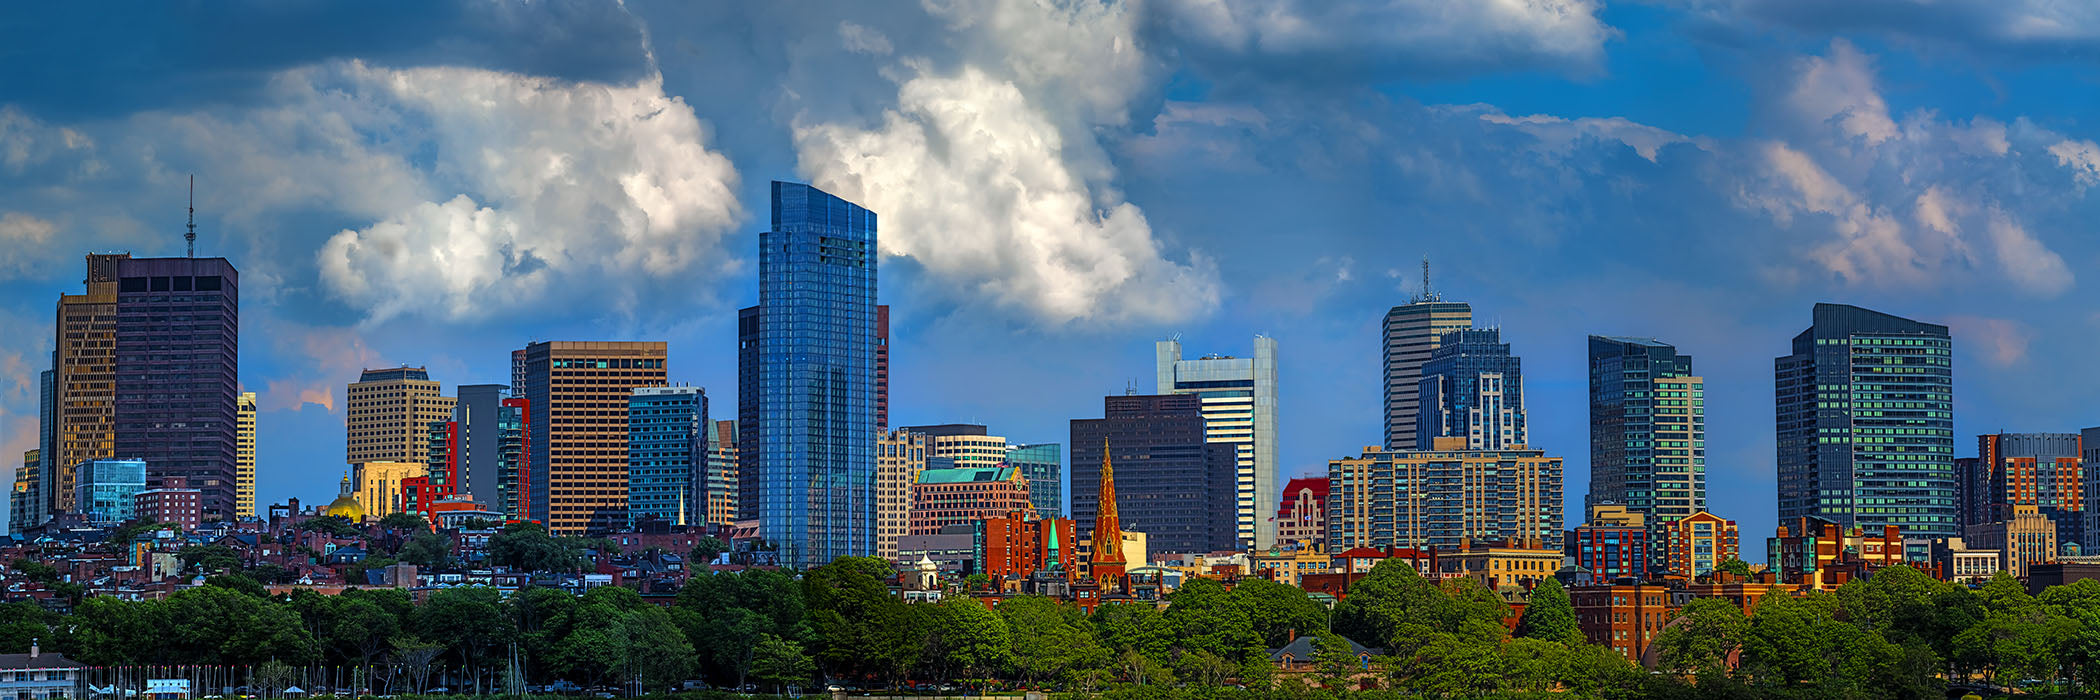 Boston skyline wall art photograph in large format